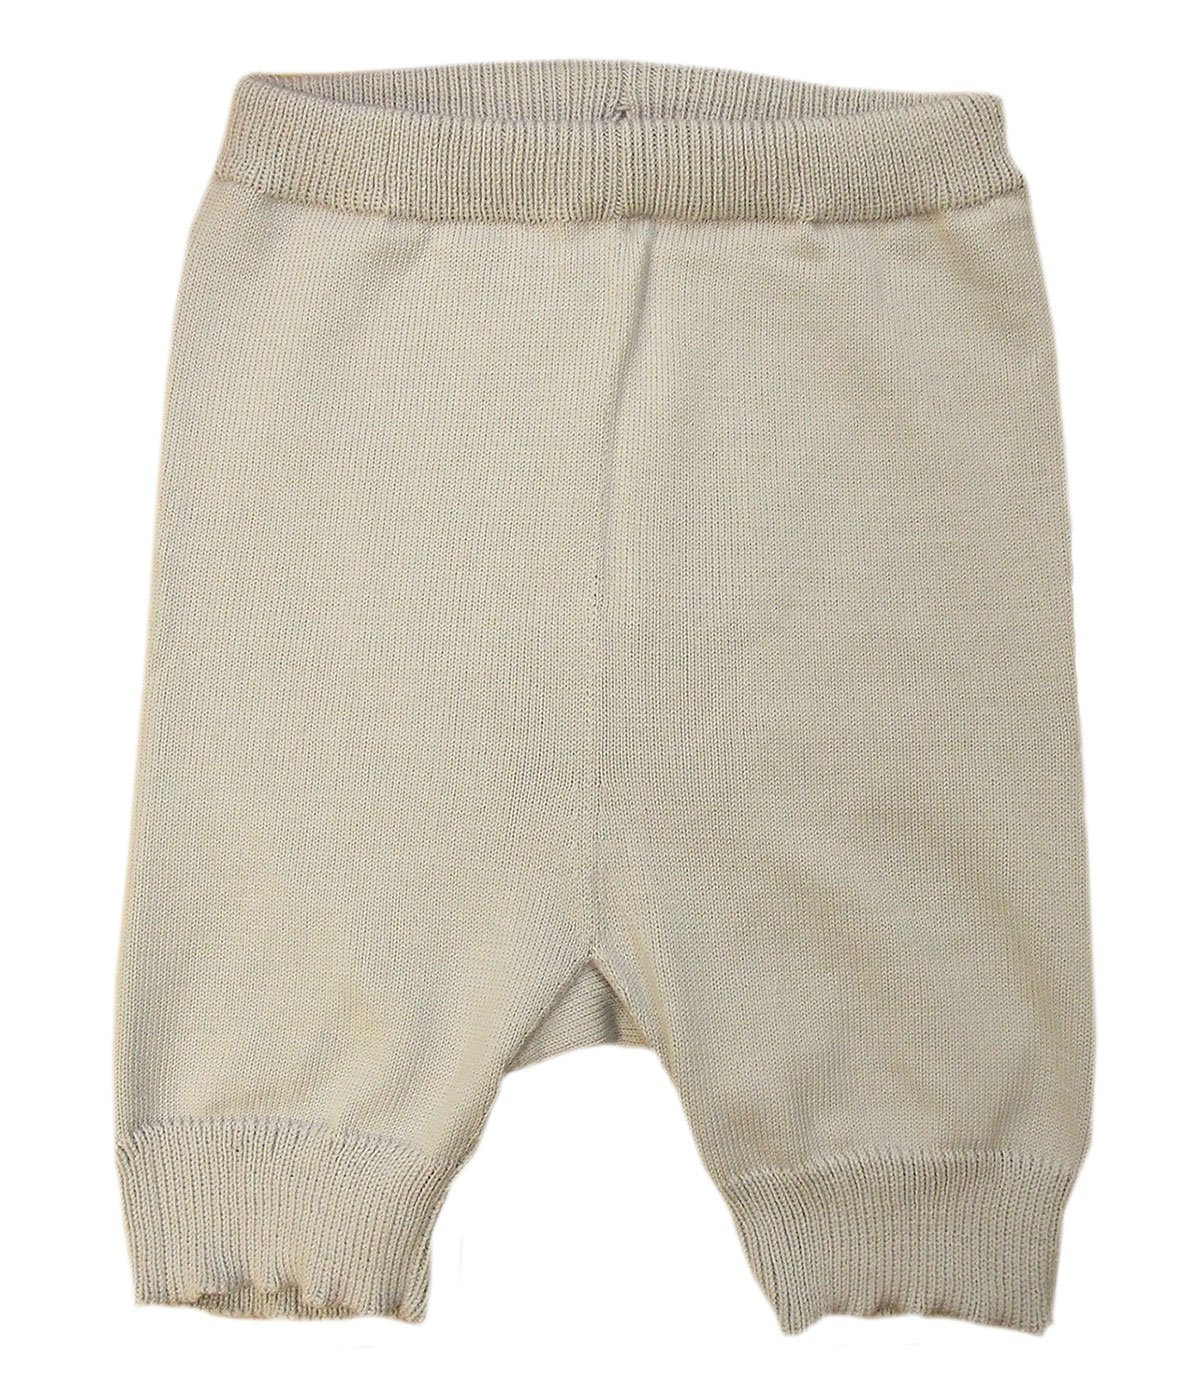 100% Merino wool adult SHORTS cloth diaper cover soaker knit knitted handmade (XL, Light grey)